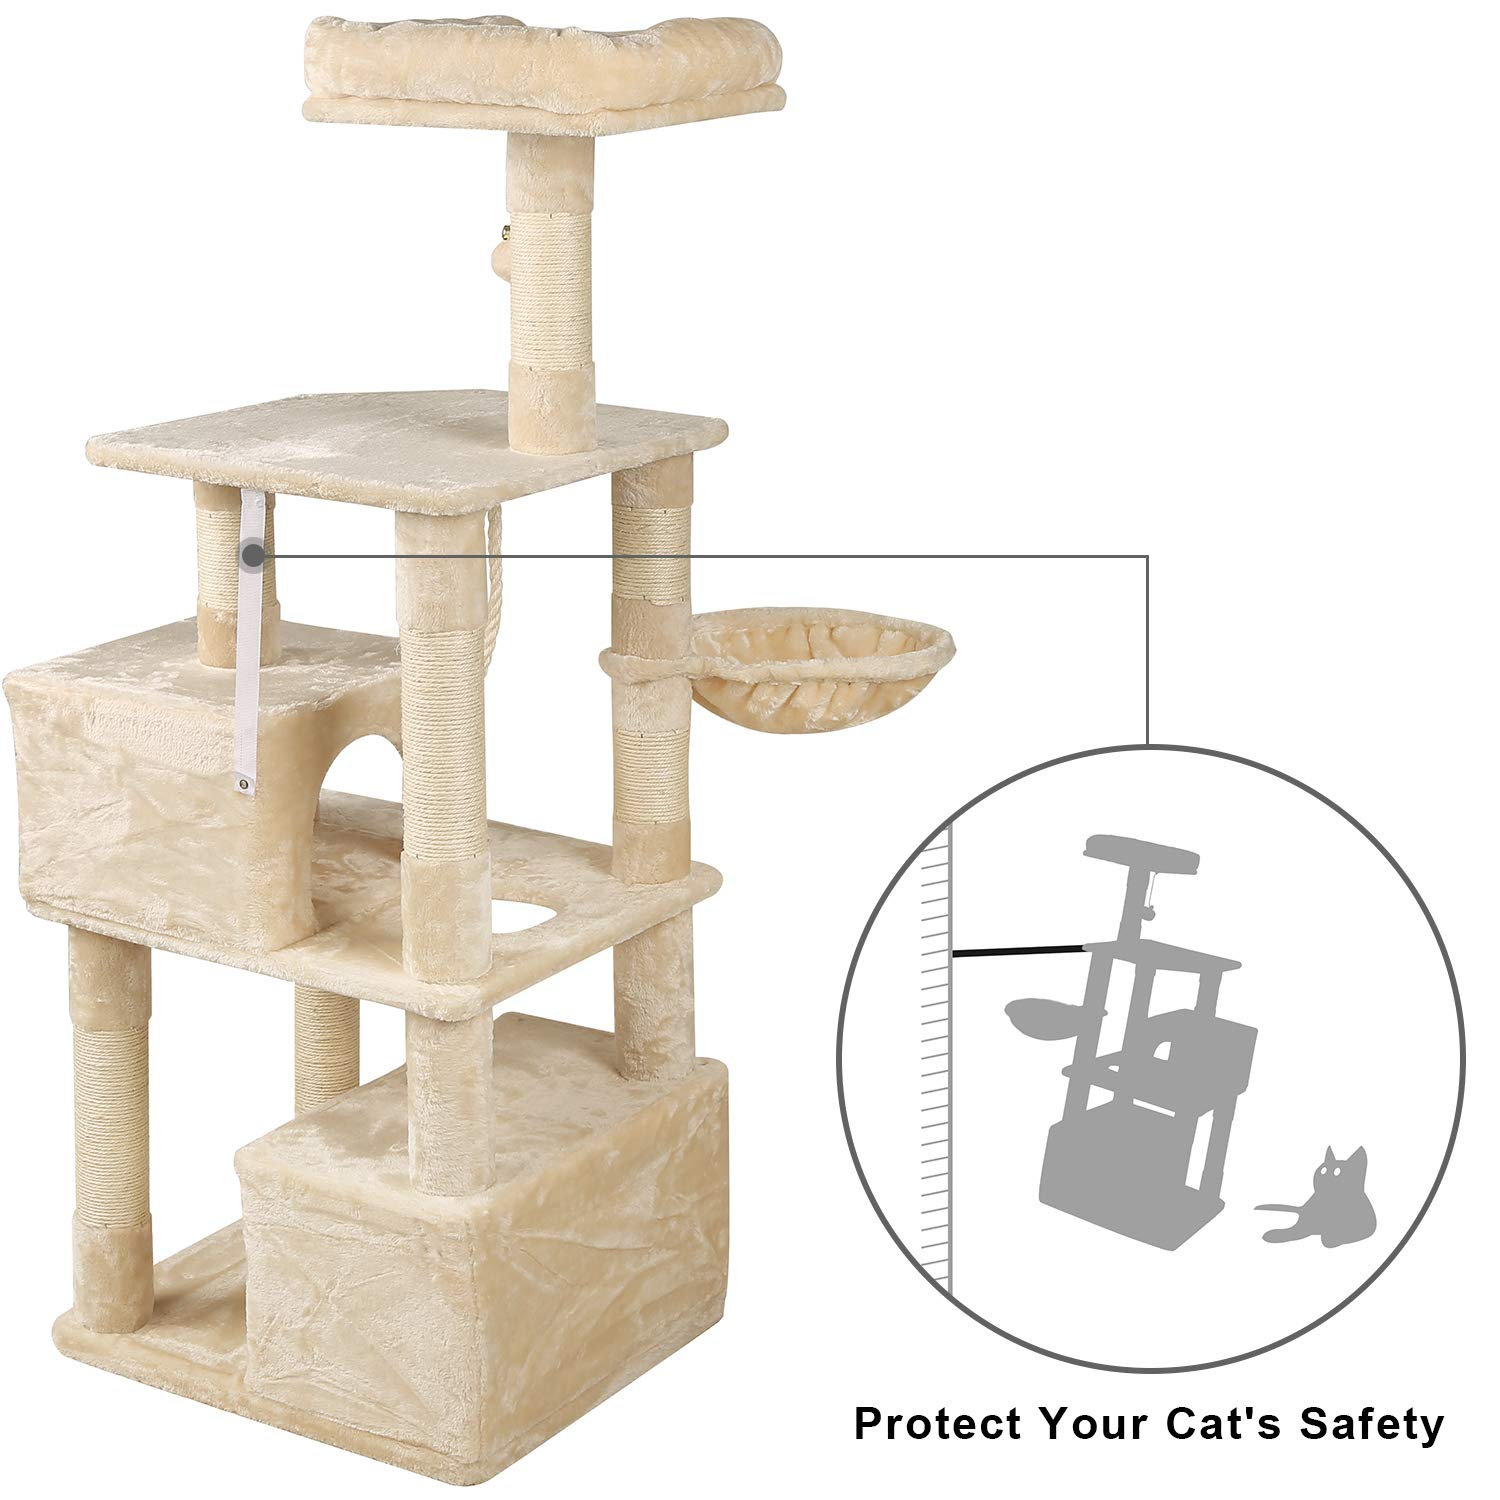 WLIVE 59'' Large Cat Tree Condo with Sisal Scratching Posts, 2 Plush Condos and Basket Lounger, Cat Tower Furniture WF062A by WLIVE (Image #4)